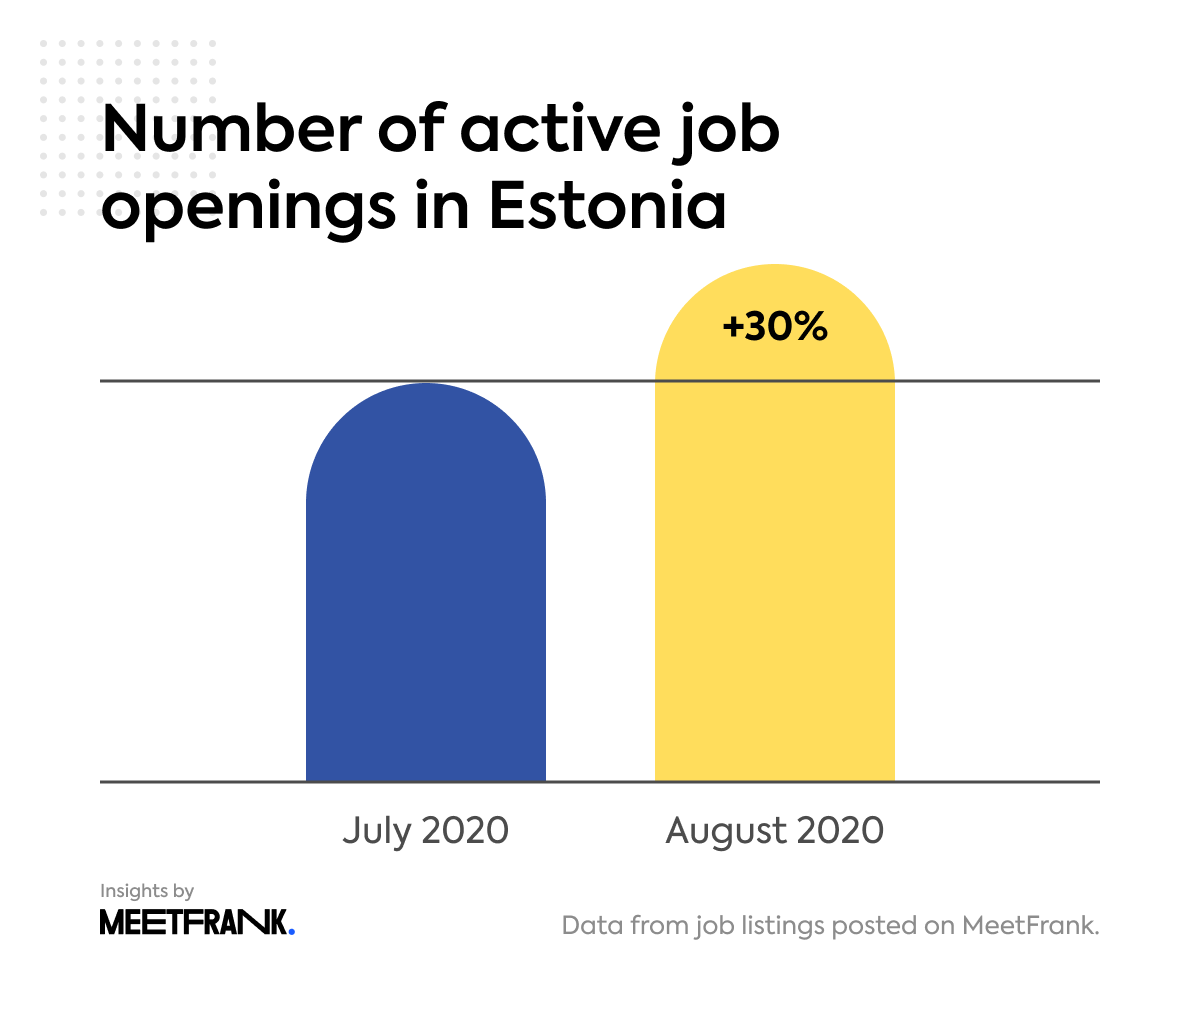 active job openings in Estonia in August